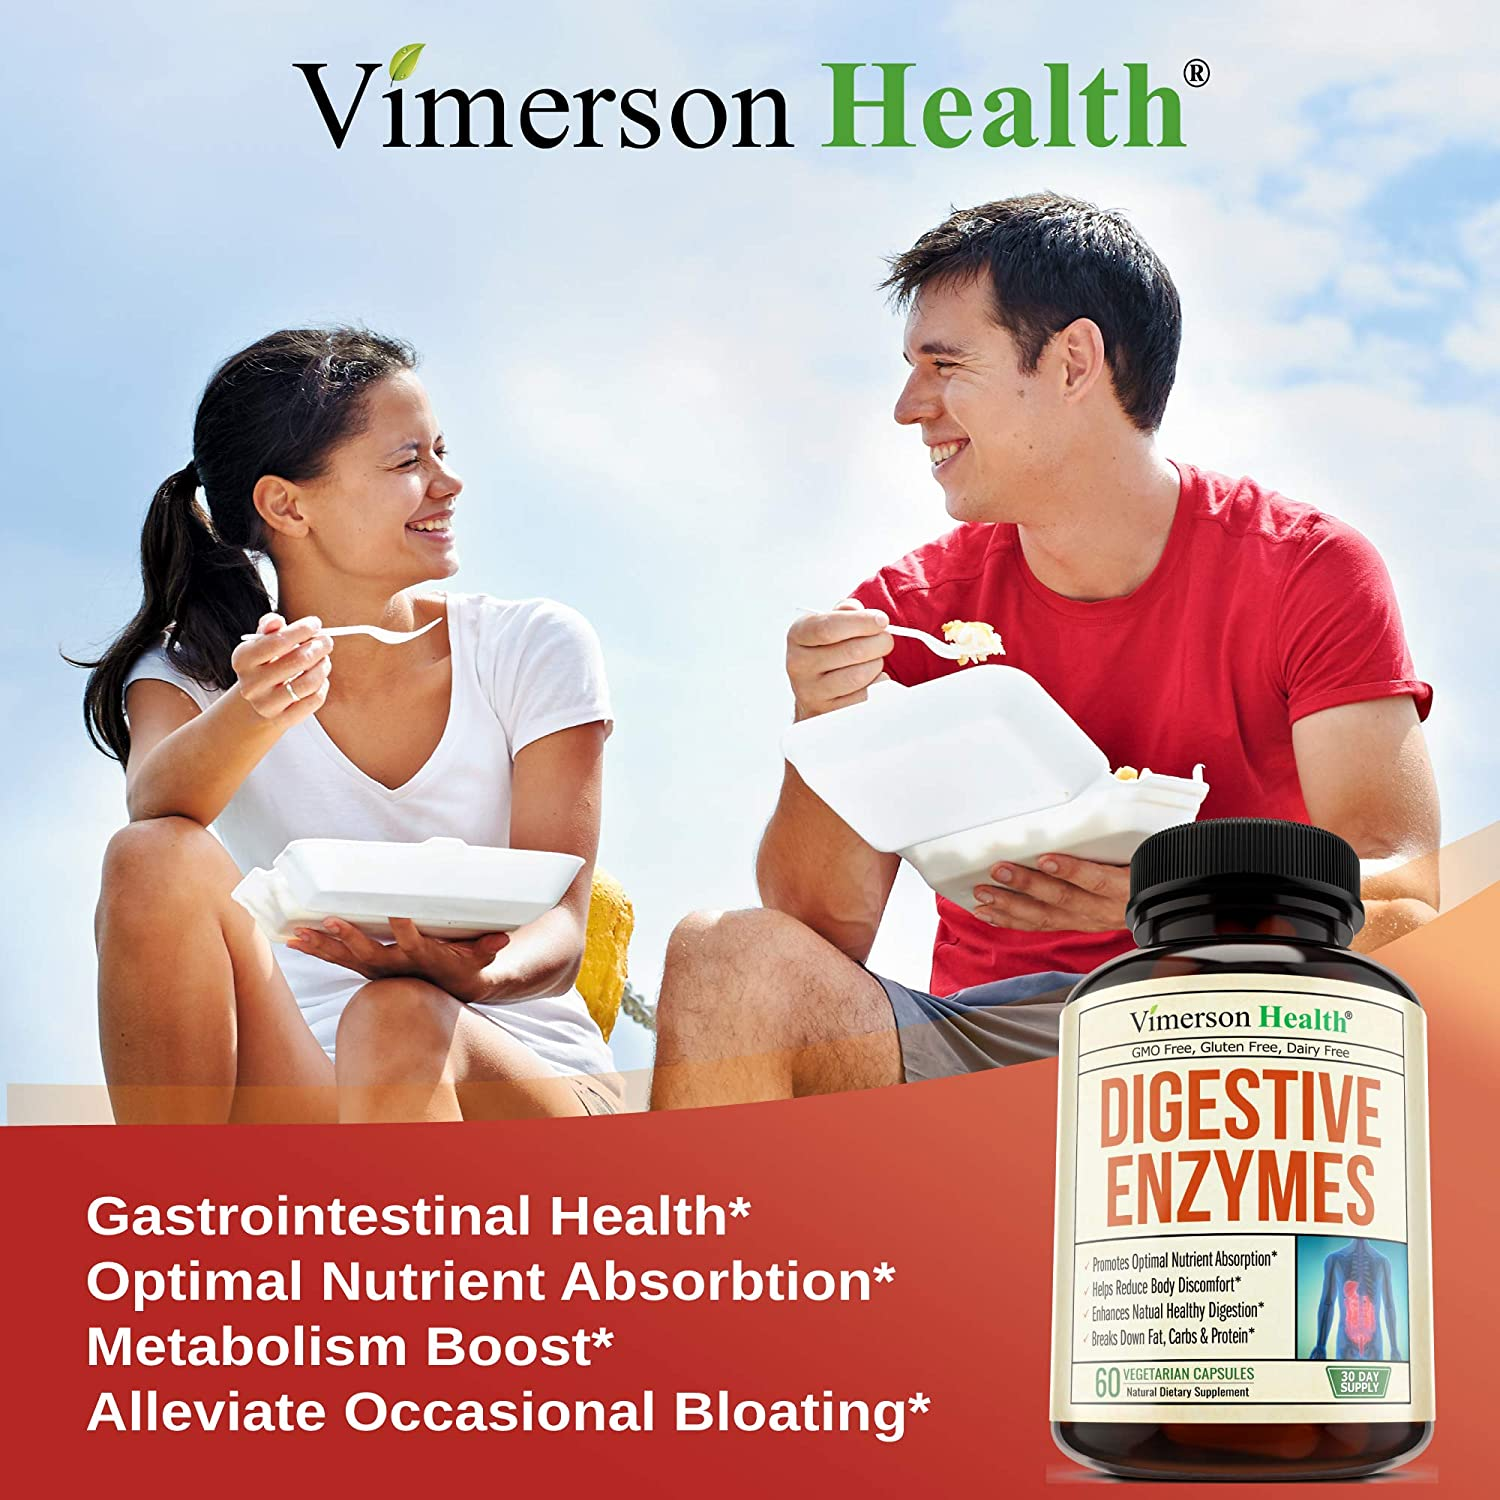 Digestive Enzymes with Probiotics. Advanced Natural Multi Enzyme Supplement for Better Digestion and Nutrient Absorption. Helps Promote Regularity, ...